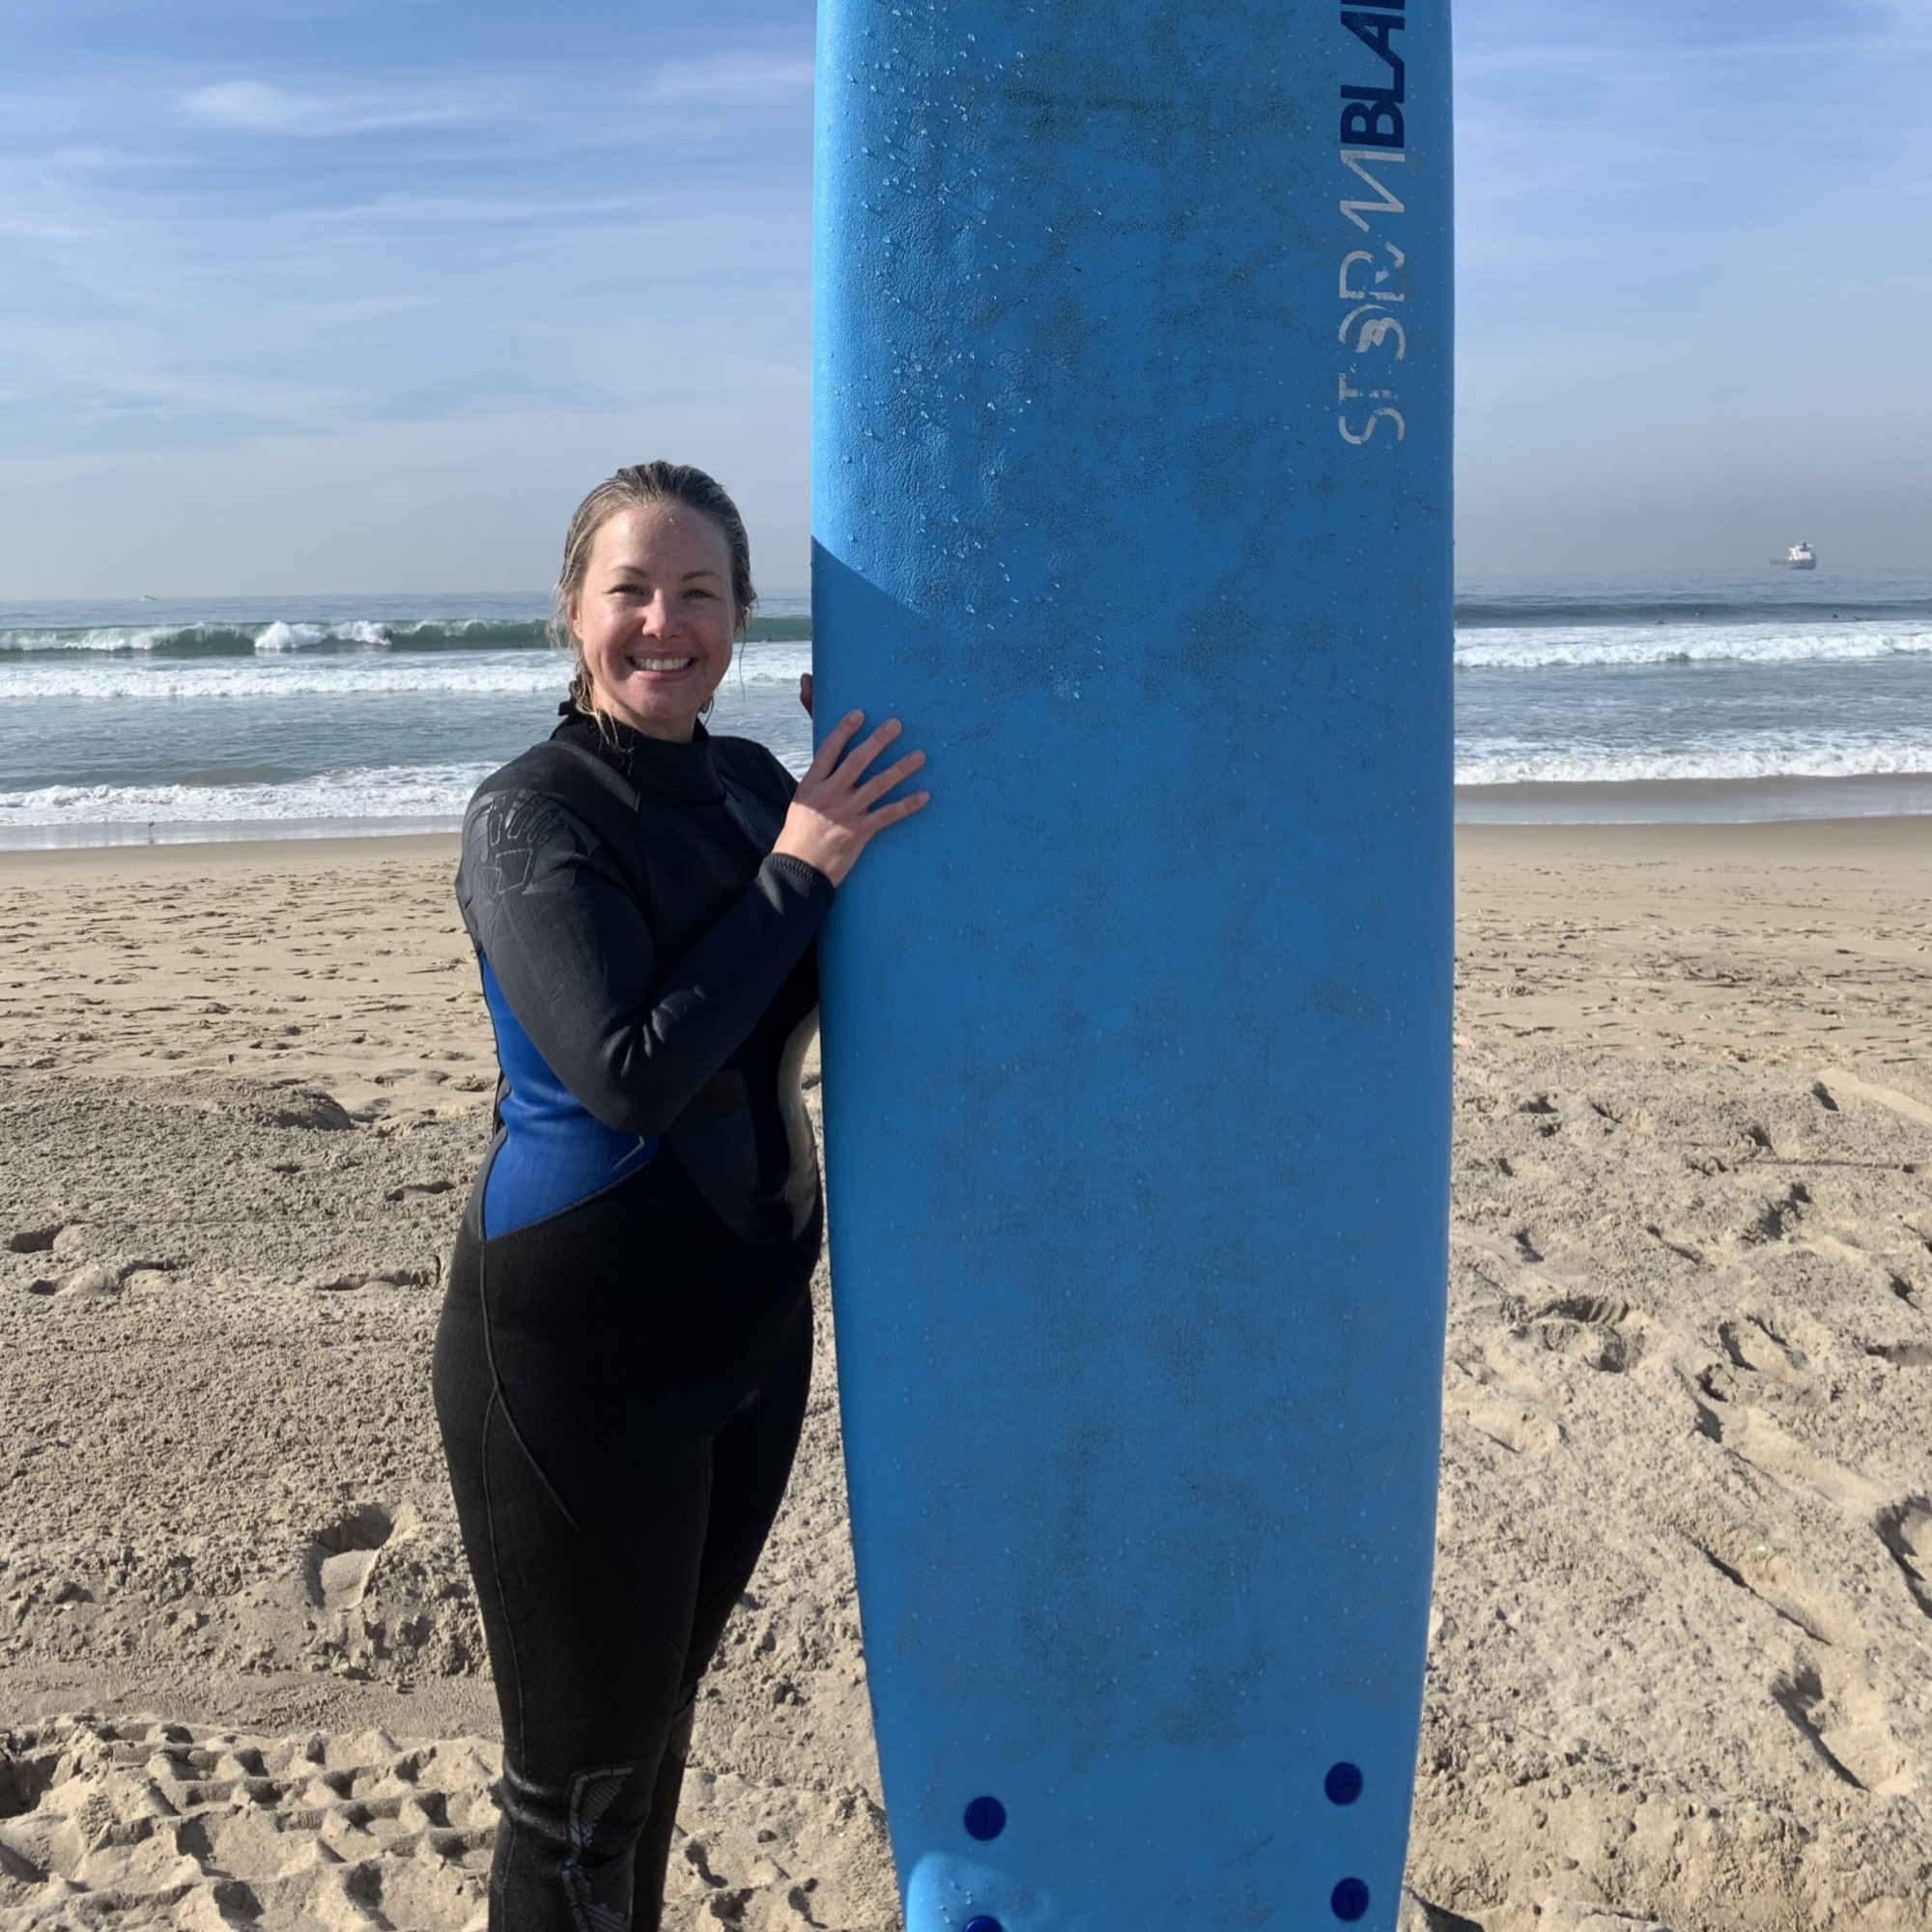 Jeanie stands on the beach in a wet suit, holding a surf board.